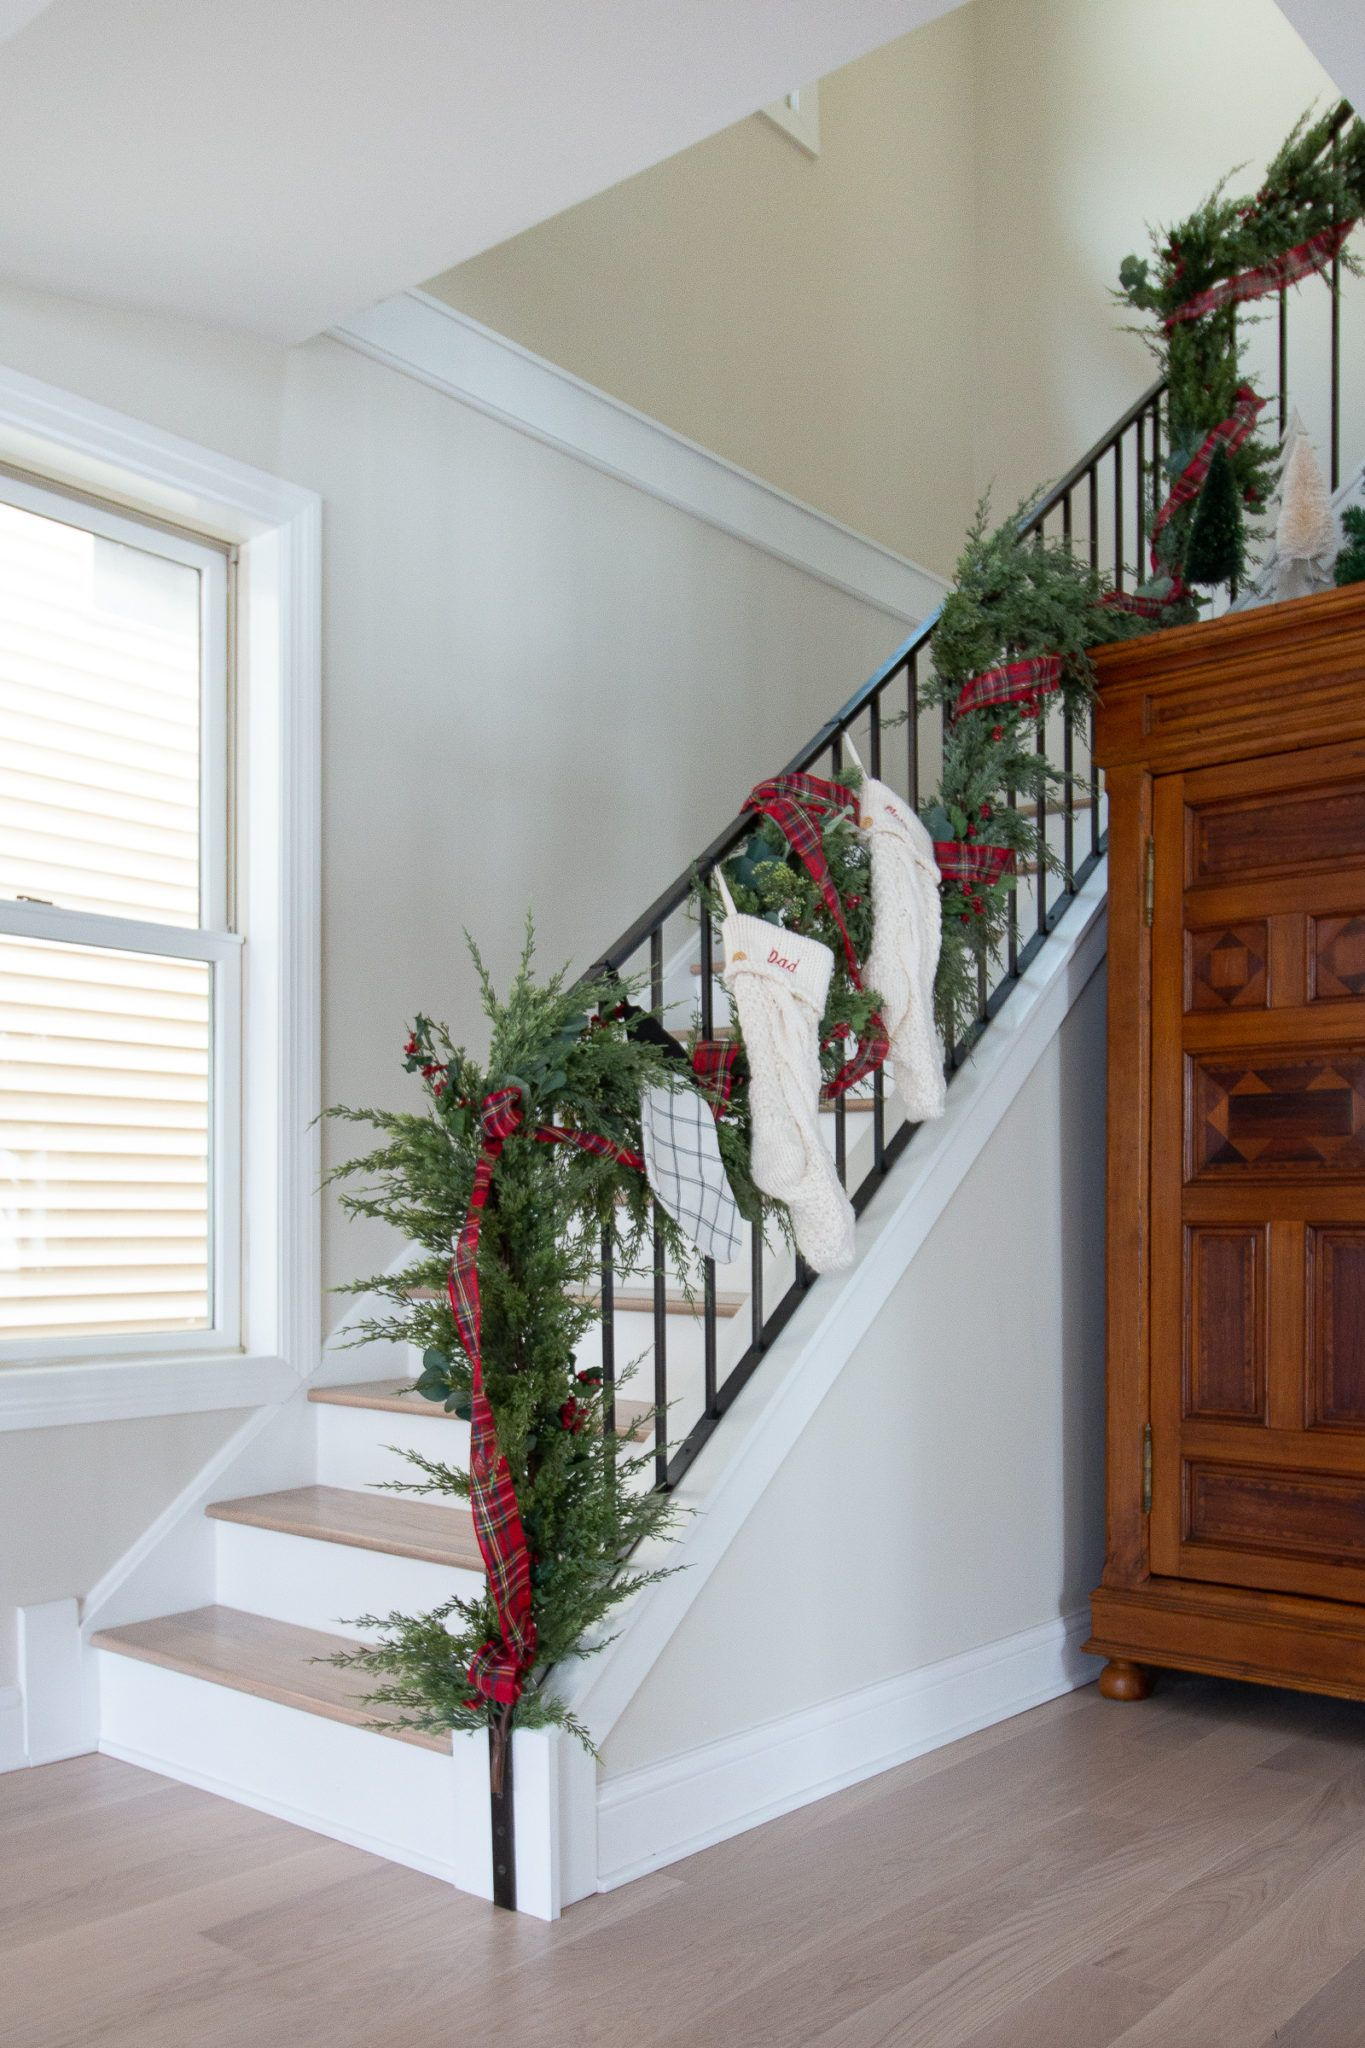 Come take a look at my simple 2019 Christmas home tour. I have two trees, a staircase with faux garland, a Christmas window box, and more! #christmasdecor #christmashome #holidayhome